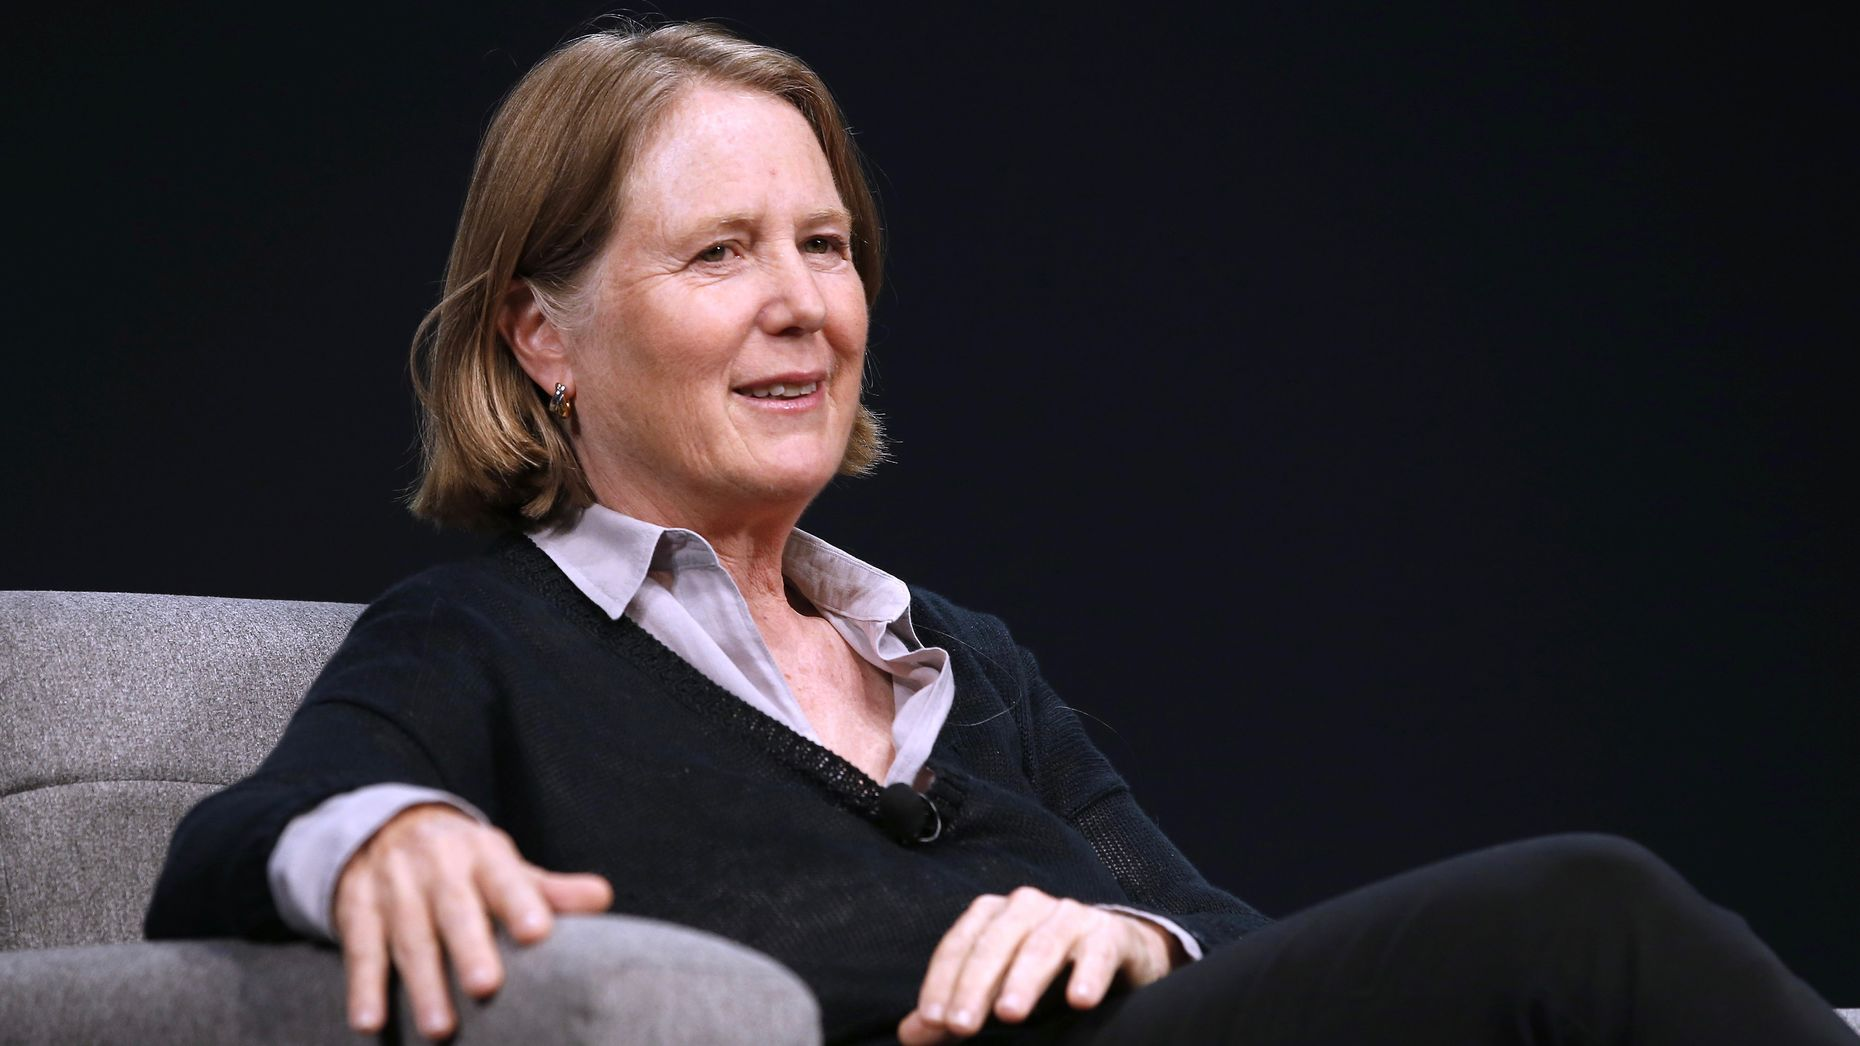 Google Cloud chief Diane Greene. Photo by Bloomberg.